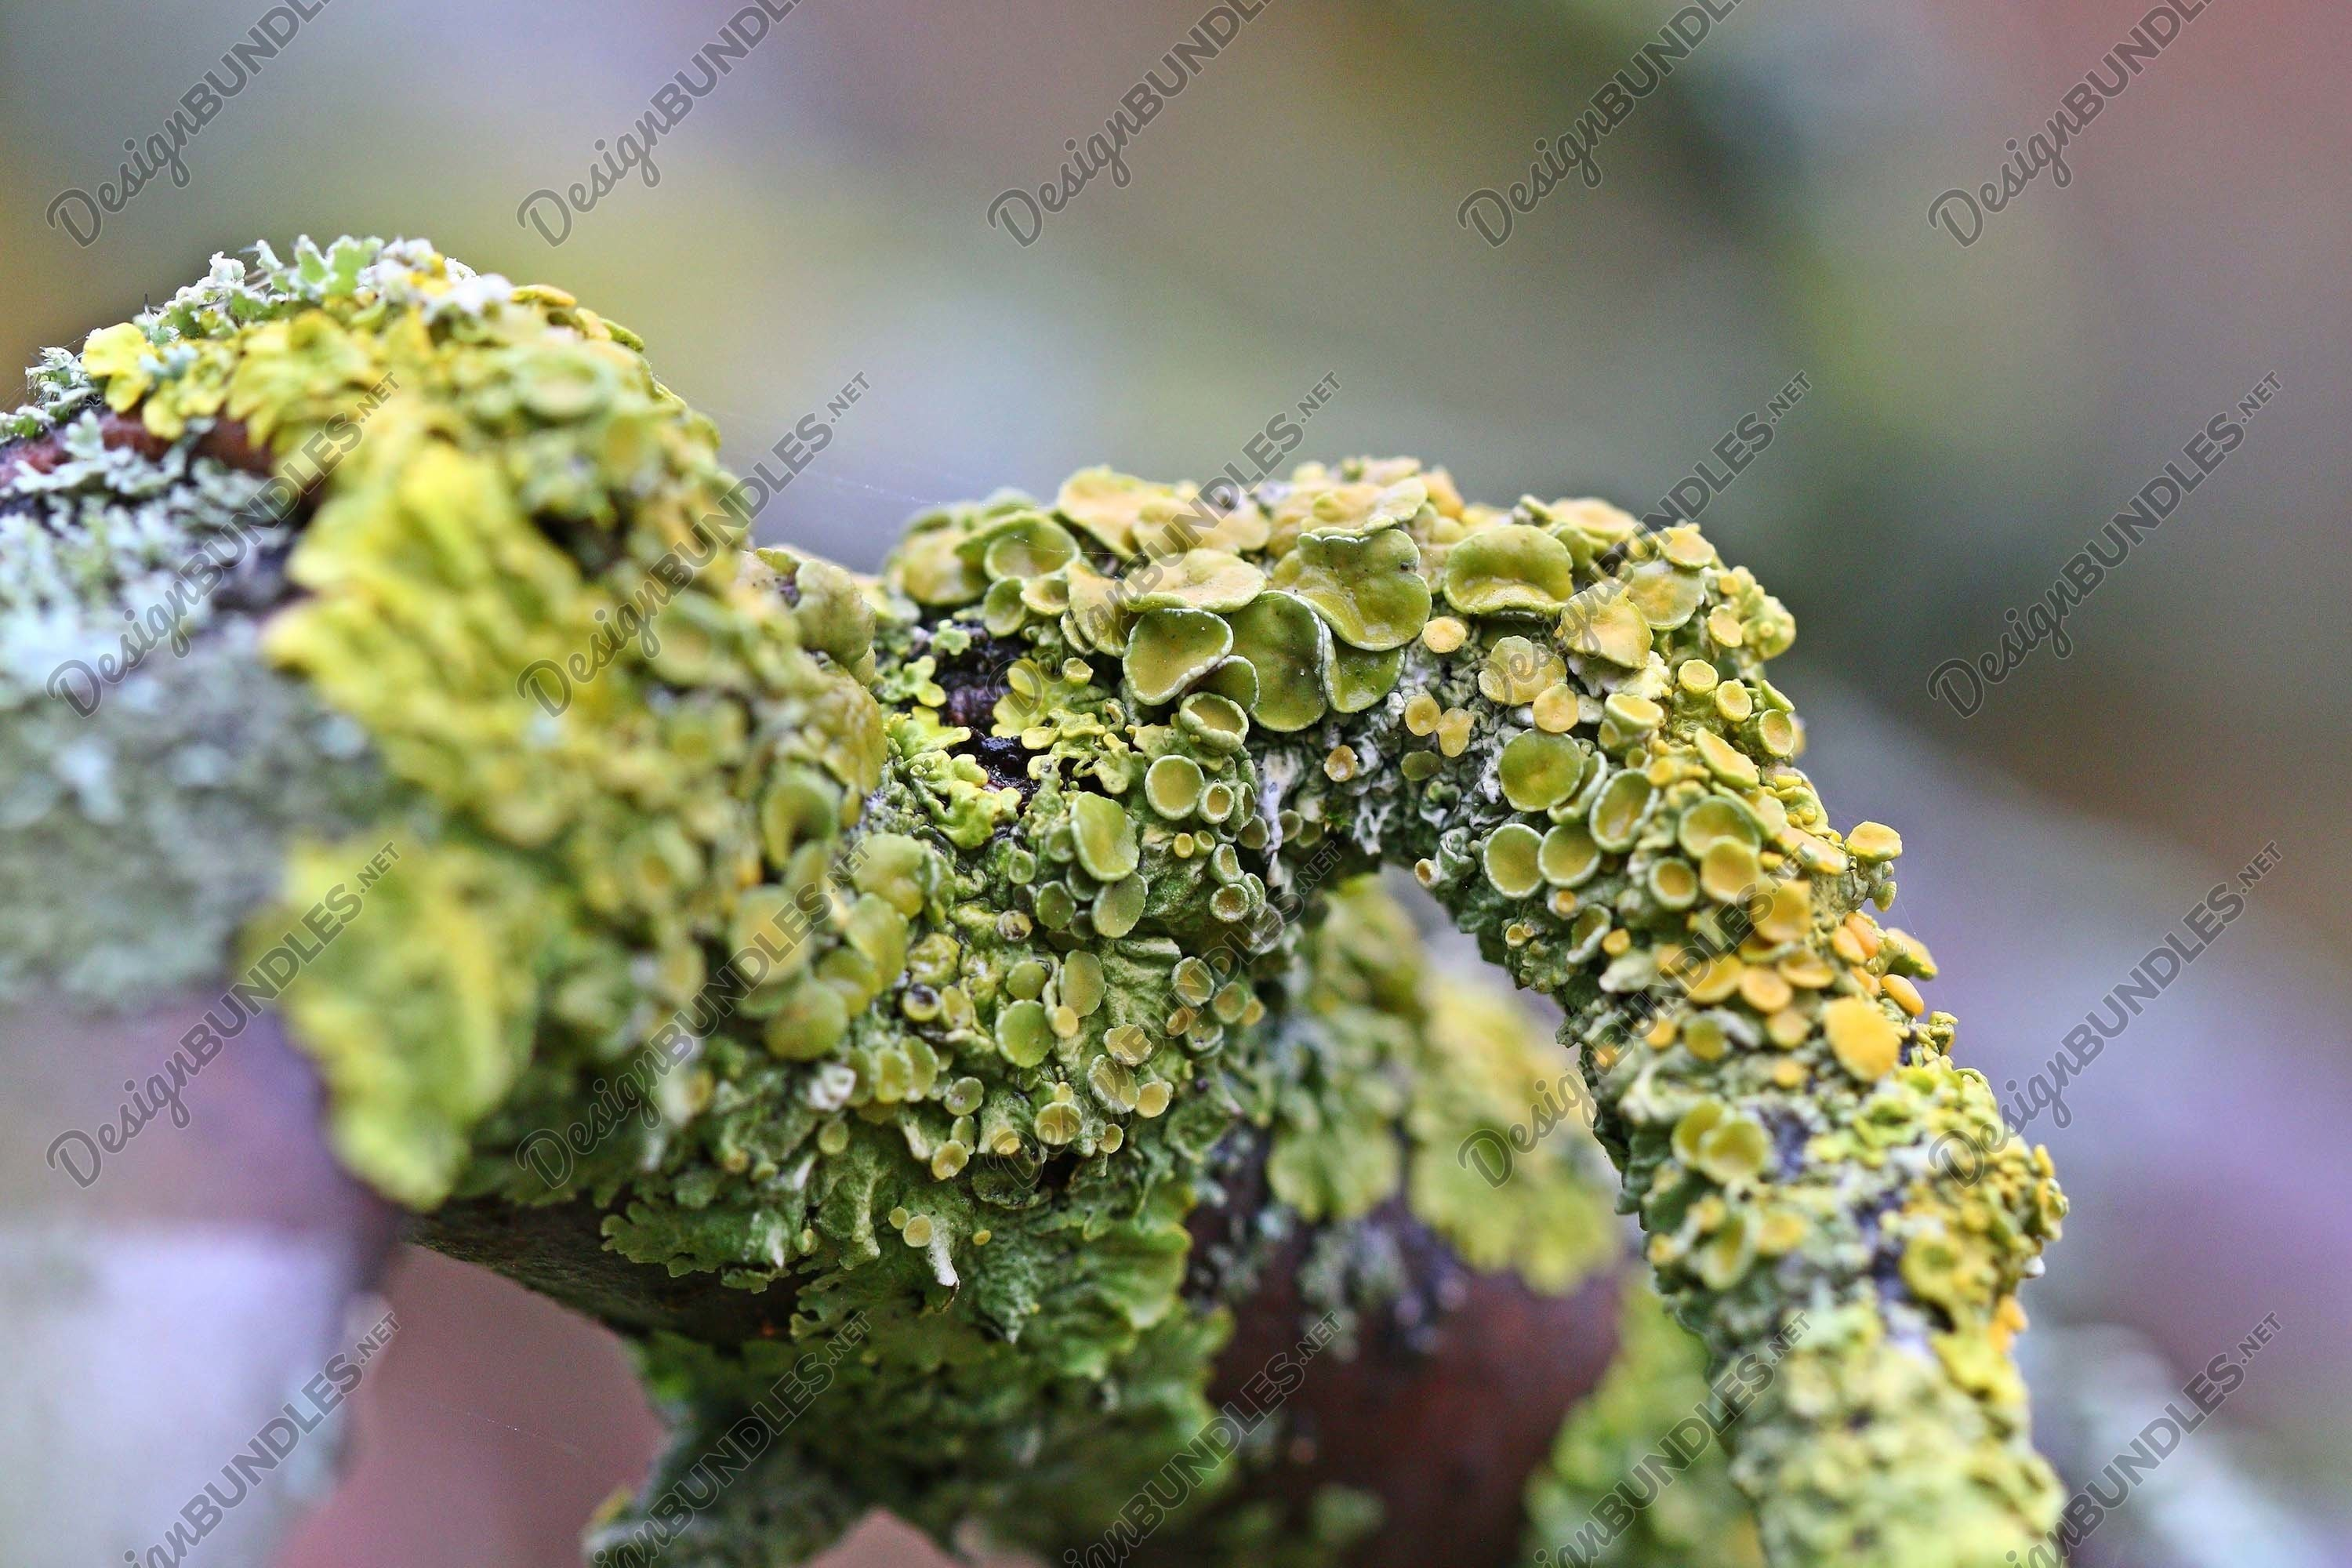 Stock Photo - Close-Up Of Moss On Logs example image 1